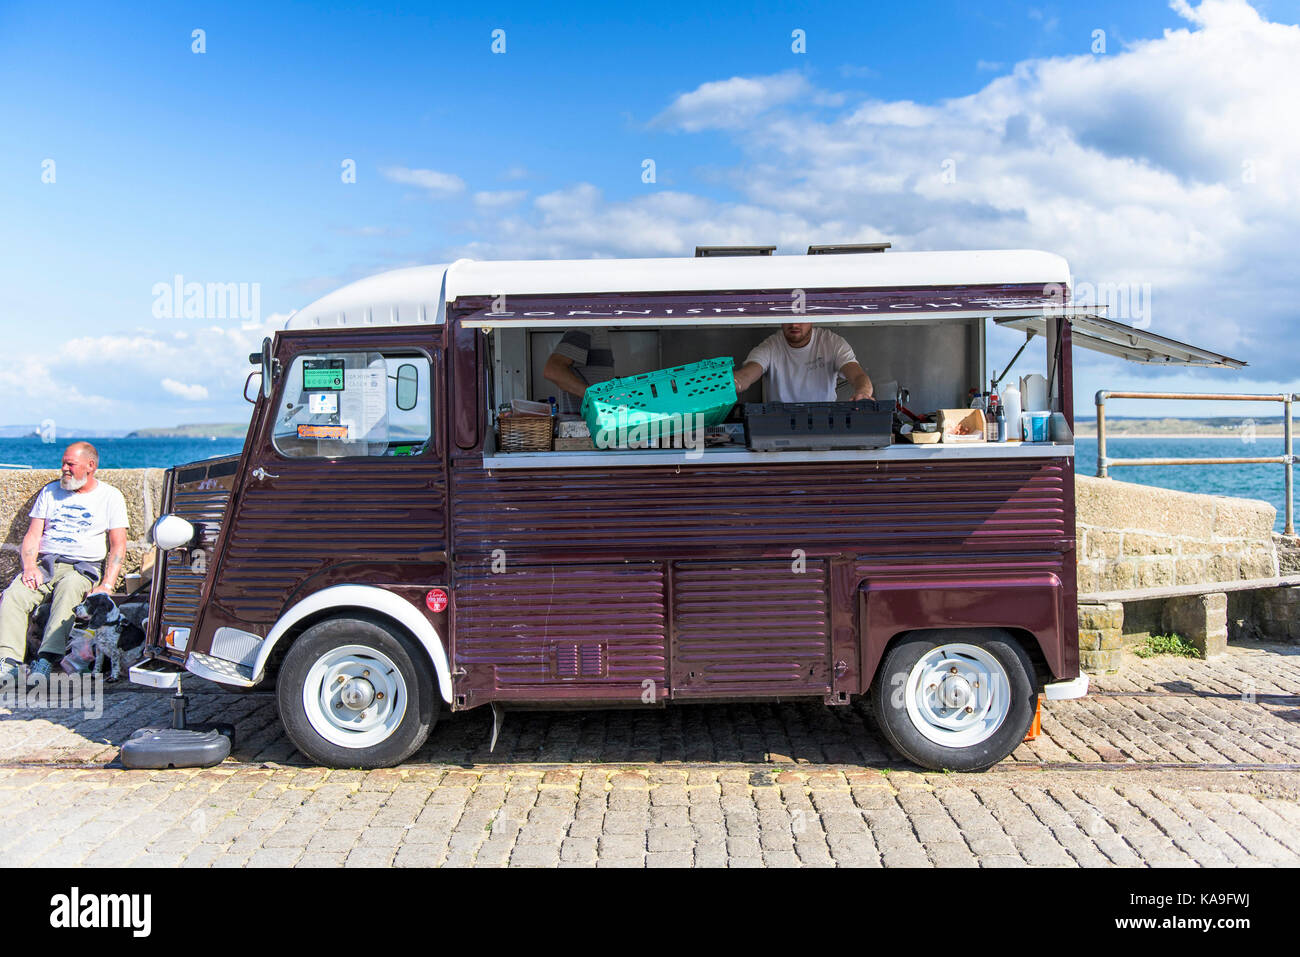 Catering truck - a classic vintage Citroen catering van parked on Smeatons Pier in st Ives in Cornwall. - Stock Image